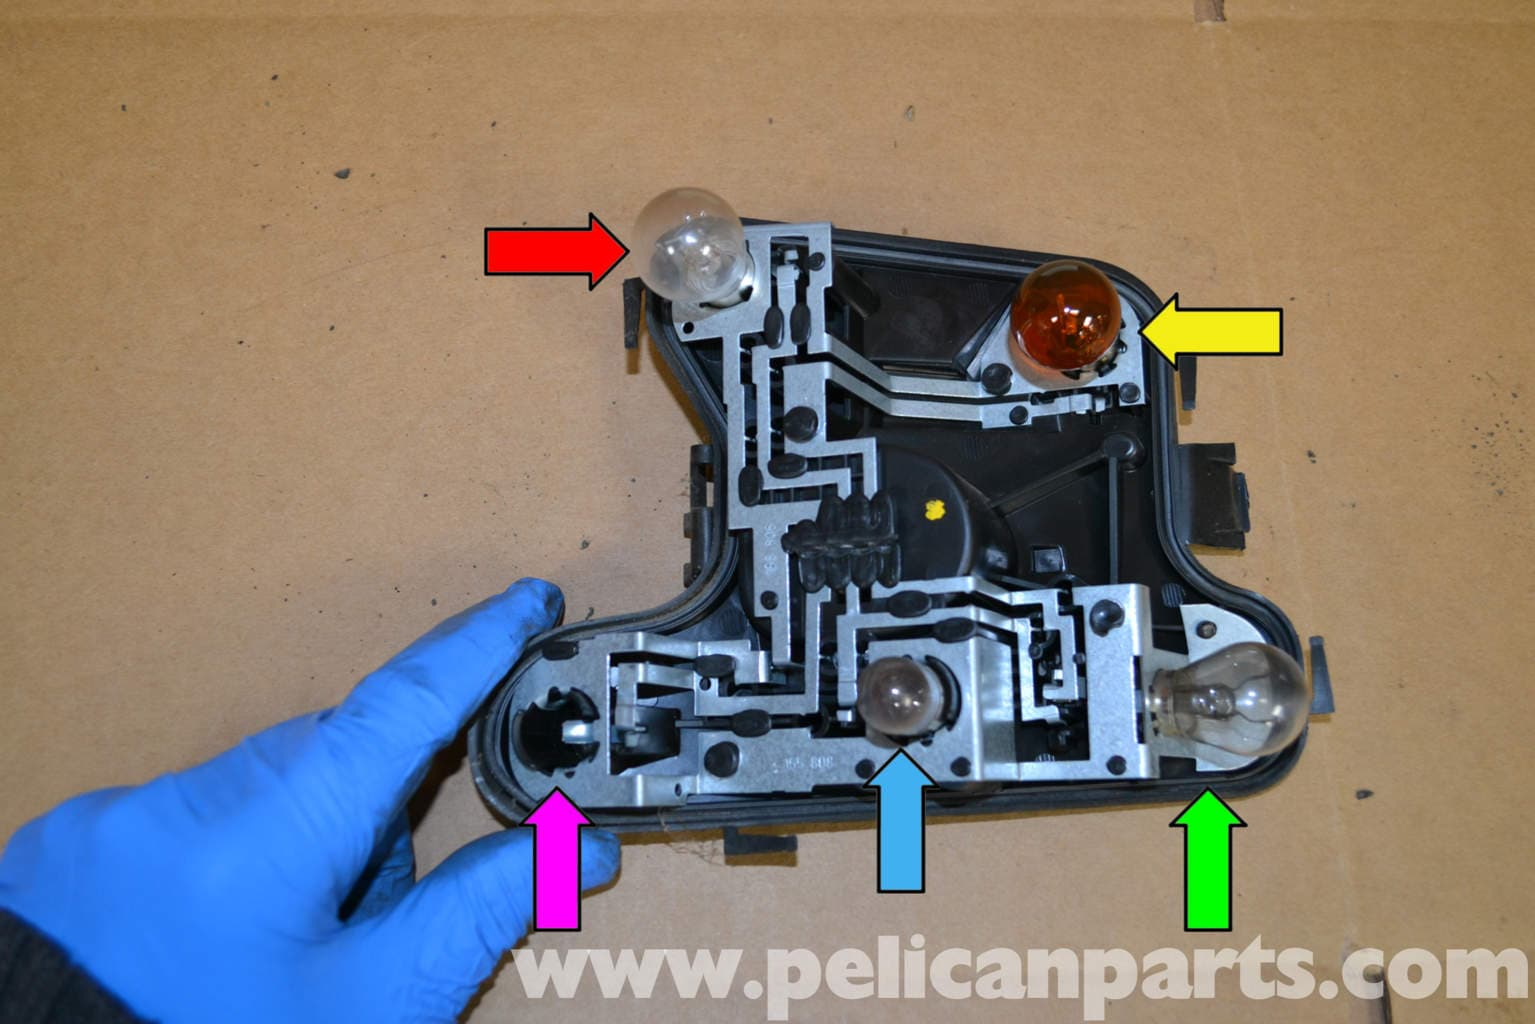 Audi A4 B6 Tail Light Bulbs and Assembly Replacement (2002-2008) | Pelican  Parts DIY Maintenance Article | Audi A4 Tail Light Wiring Diagram |  | Pelican Parts